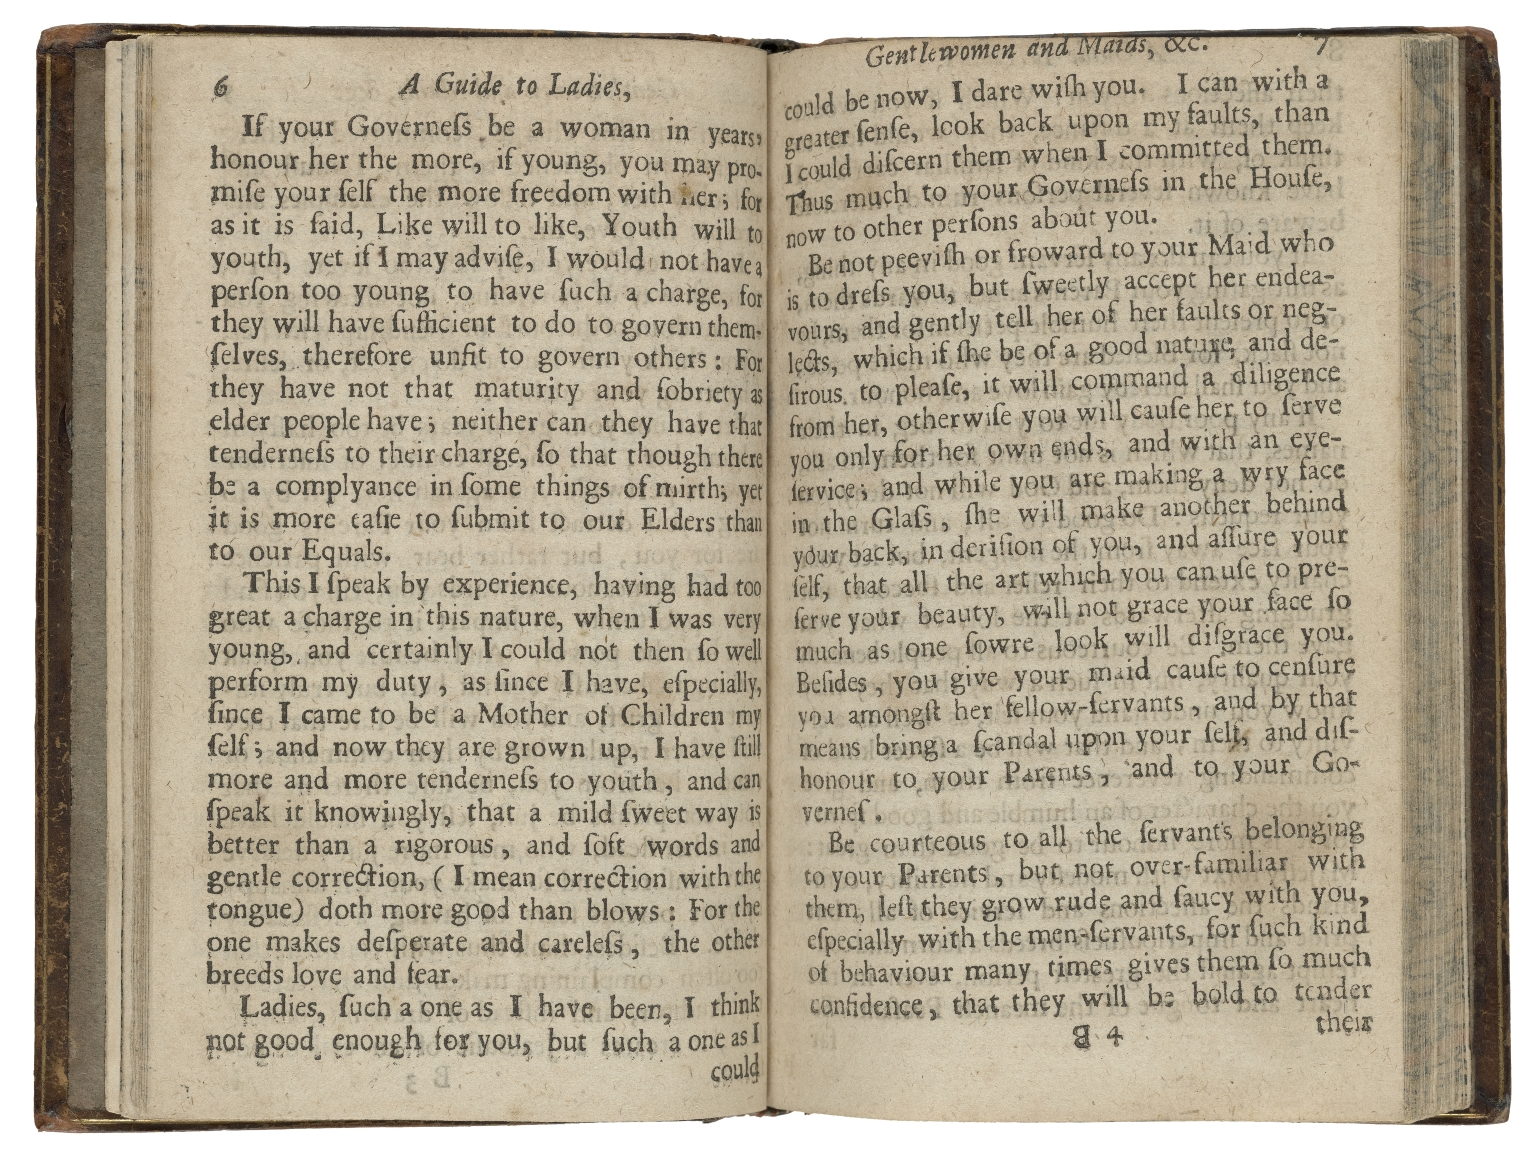 A guide to ladies, gentlewomen and maids : containing directions of behaviour, in all places, companies, relations, and conditions, from their childhood down to old age: viz. As children to parents. Scholars to governours. Single to servants. Virgins to suitors. Married to husbands. Huswifes to the house. Mistresses to servants. Mothers to children. Widows to the world, and as prudent to all. With letters and discourses upon all occasions, with several tales, and the ladies farewell. Whereunto is added, a guide for cook-maids, dairy-maids, chamber-maids, and all others that go to service: the whole being exact rules for the female sex in generall. By Hannah Woolley.